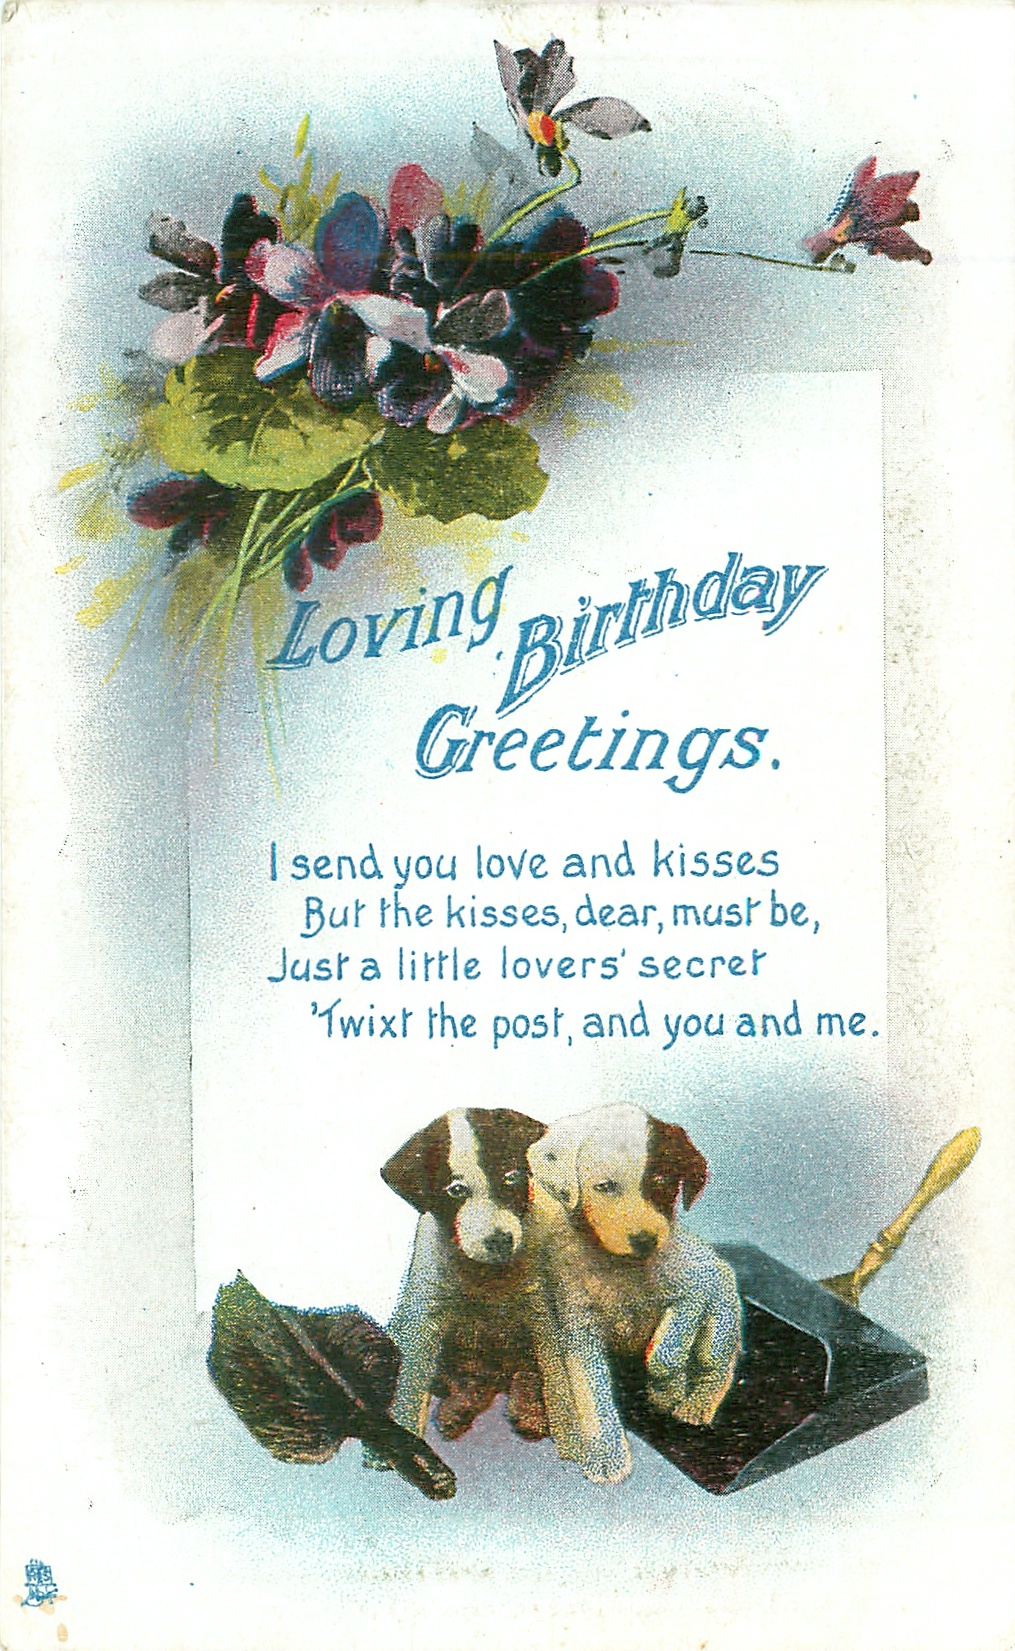 Loving Birthday Greetings Violets Above Two Puppies Tuckdb Postcards